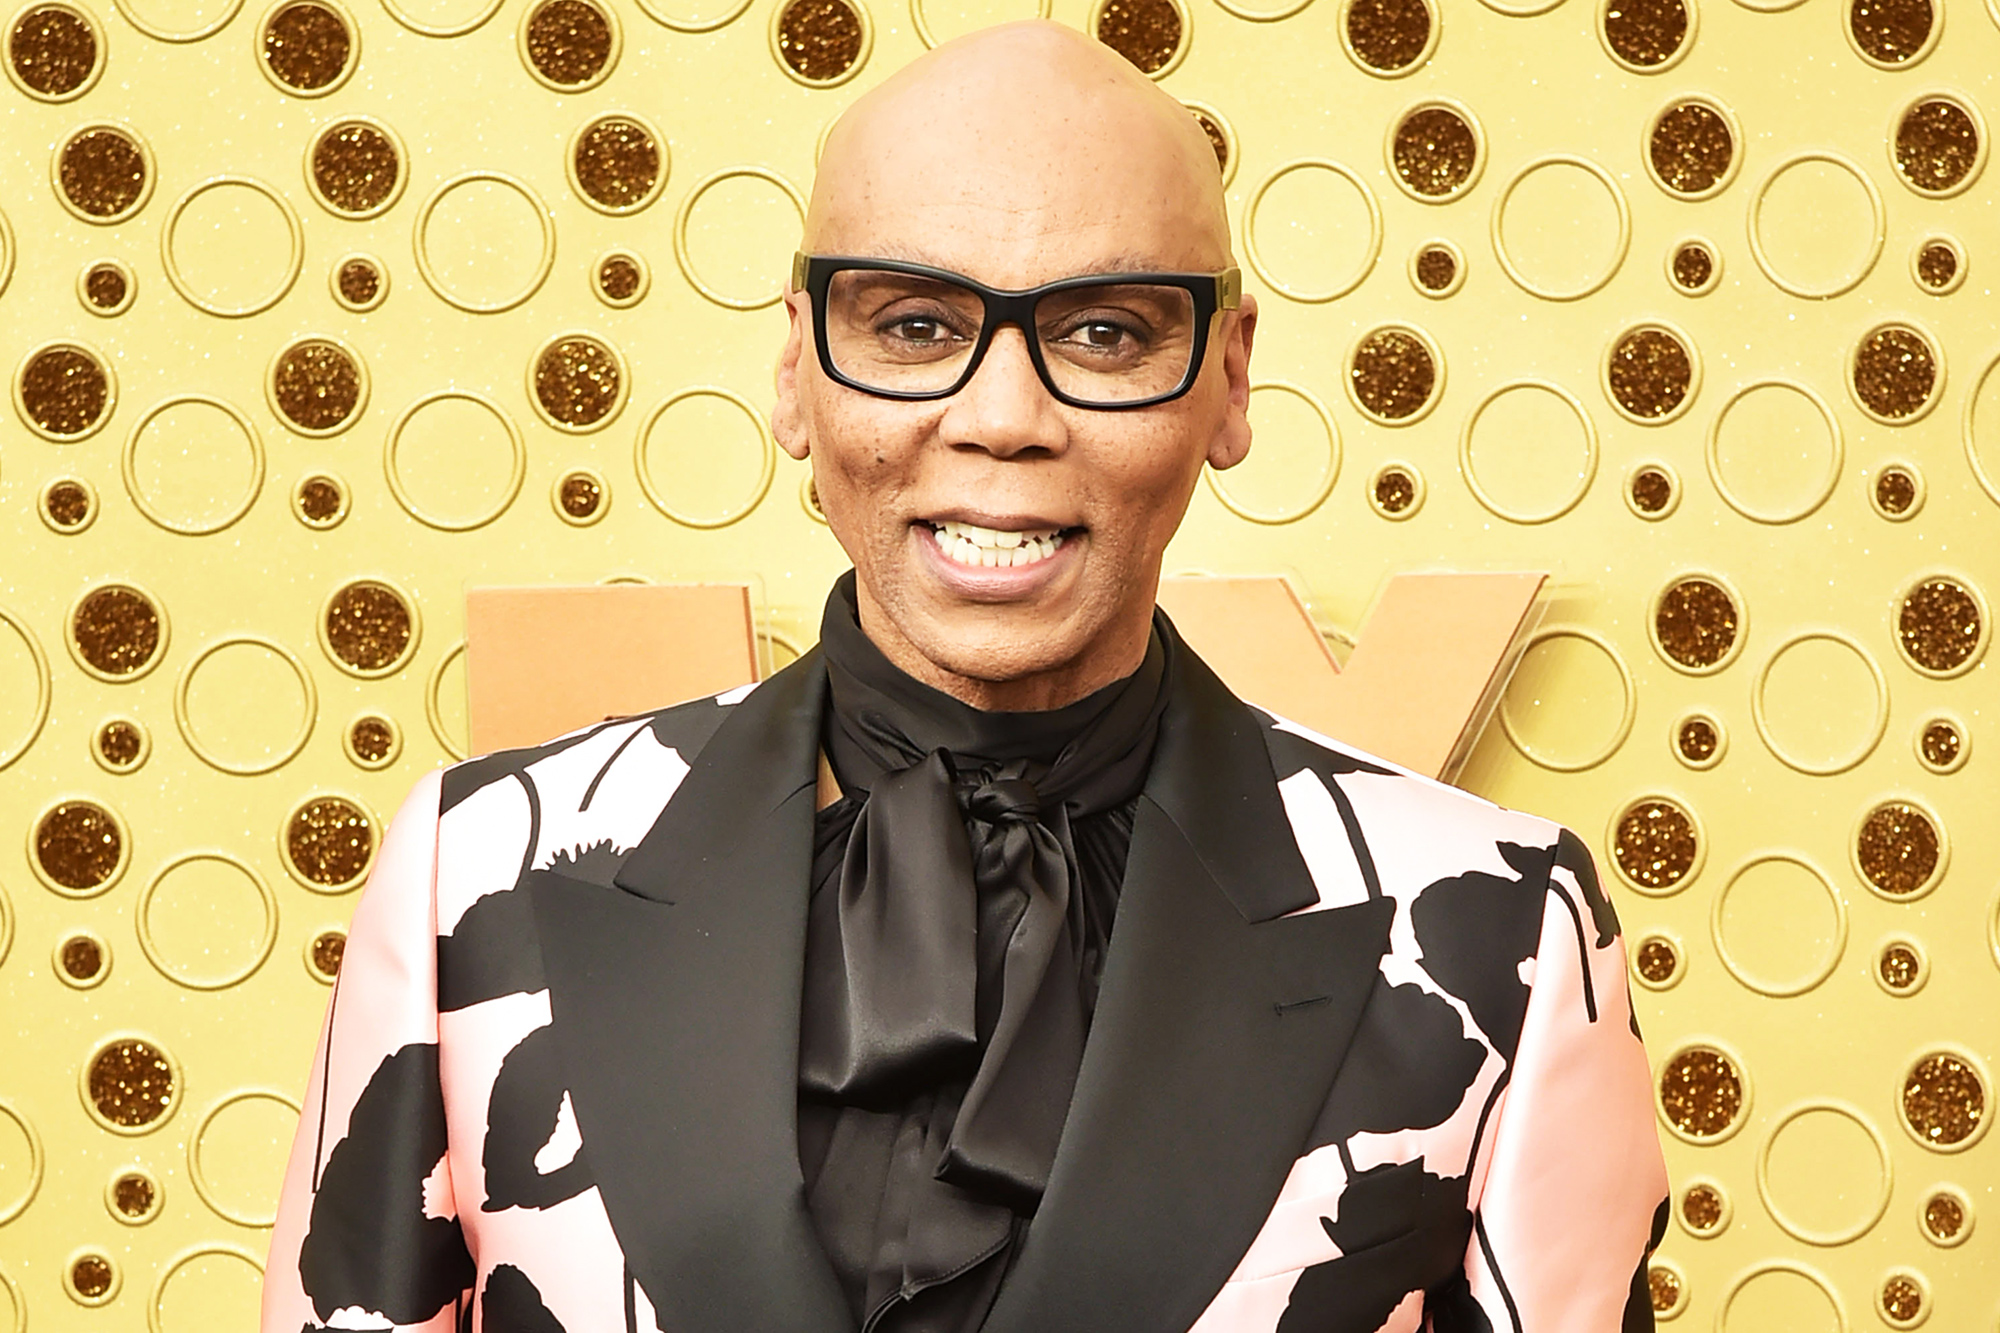 RuPaul attends the 71st Emmy Awards at Microsoft Theater on September 22, 2019 in Los Angeles, California.